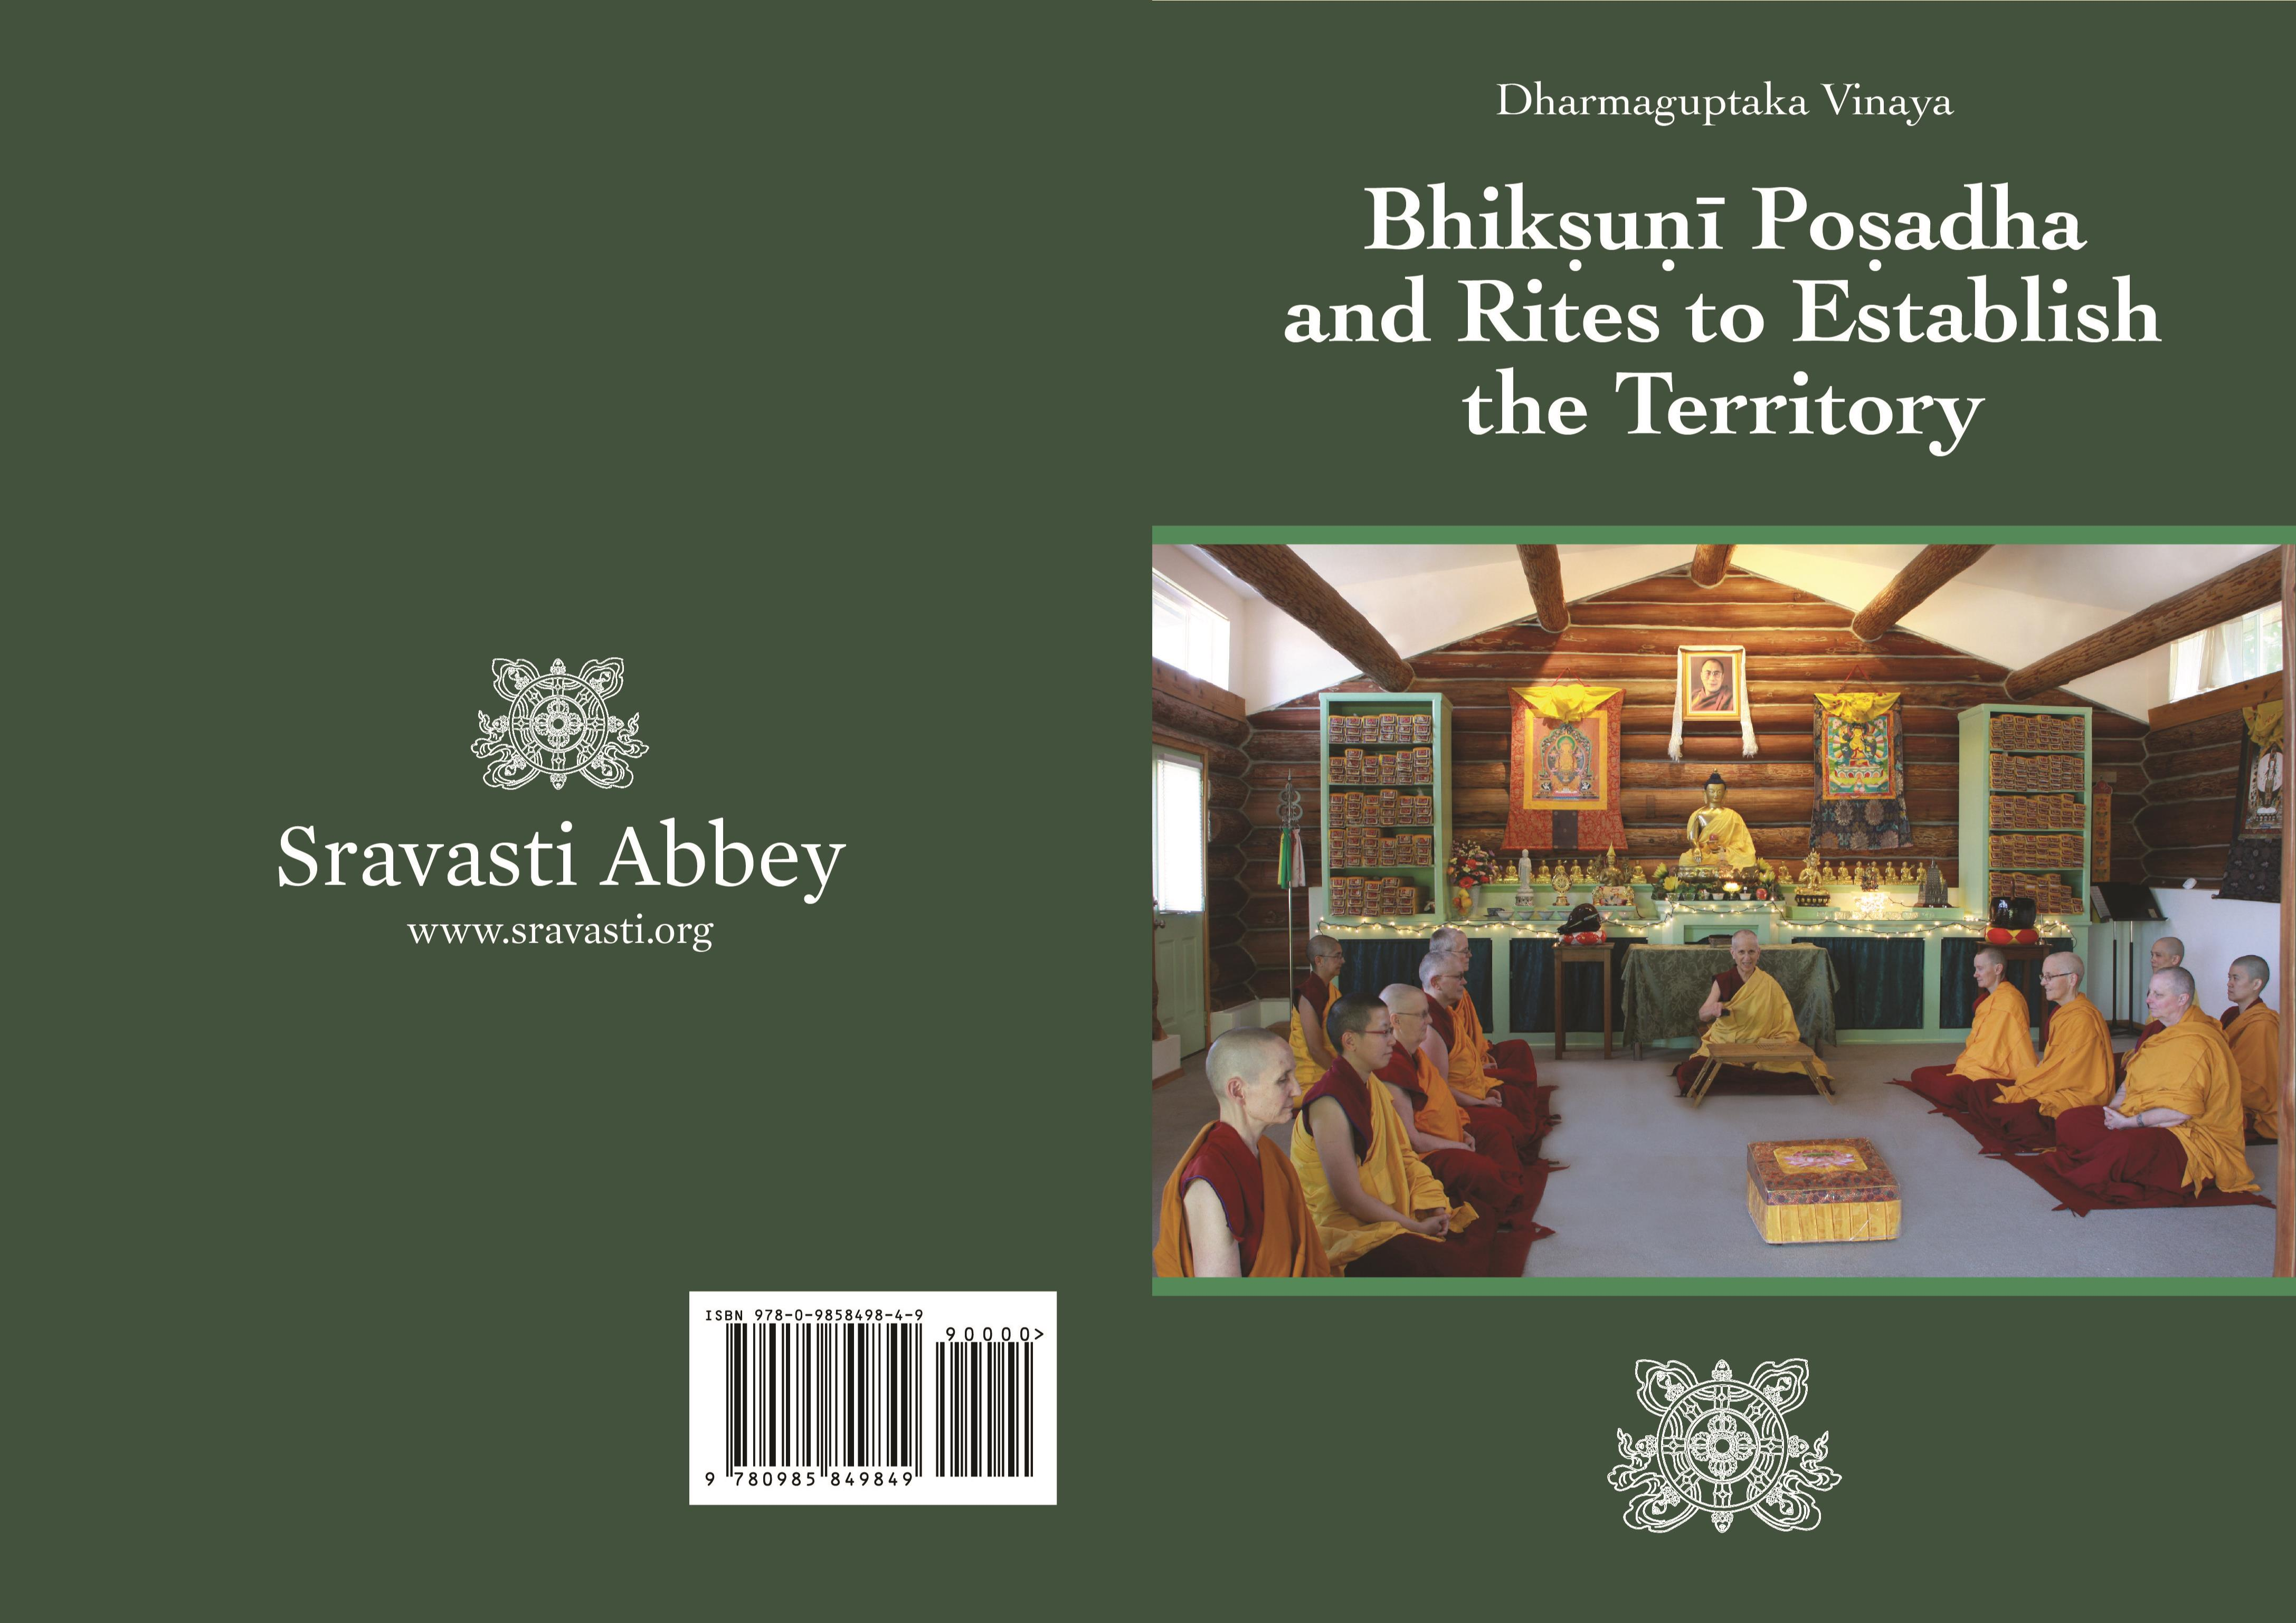 Dharmaguptaka Vinaya Bhiksuni Posadha and Rites to Establish the Territory cover image